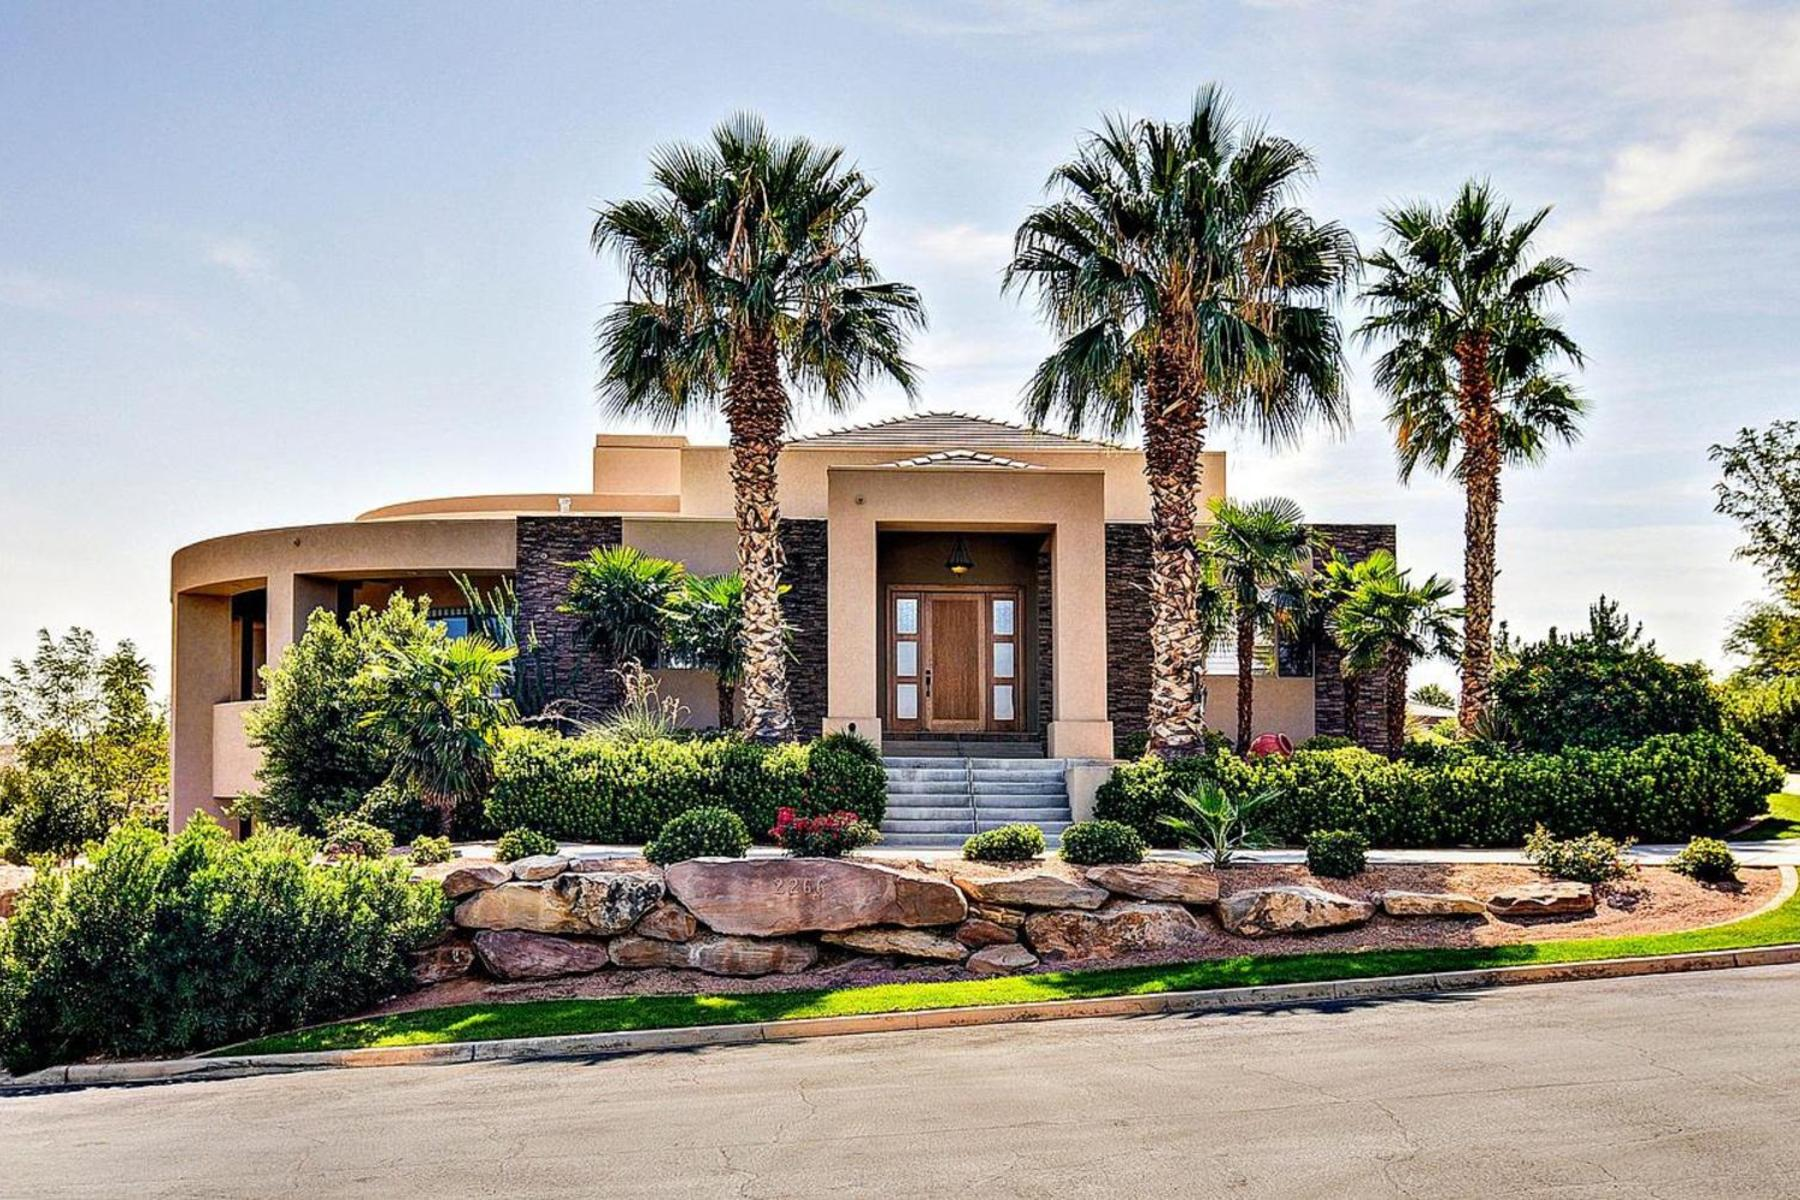 Single Family Home for Sale at Luxurious Contemporary Design with Pool 2266 Stone Cliff Dr St. George, Utah 84790 United States